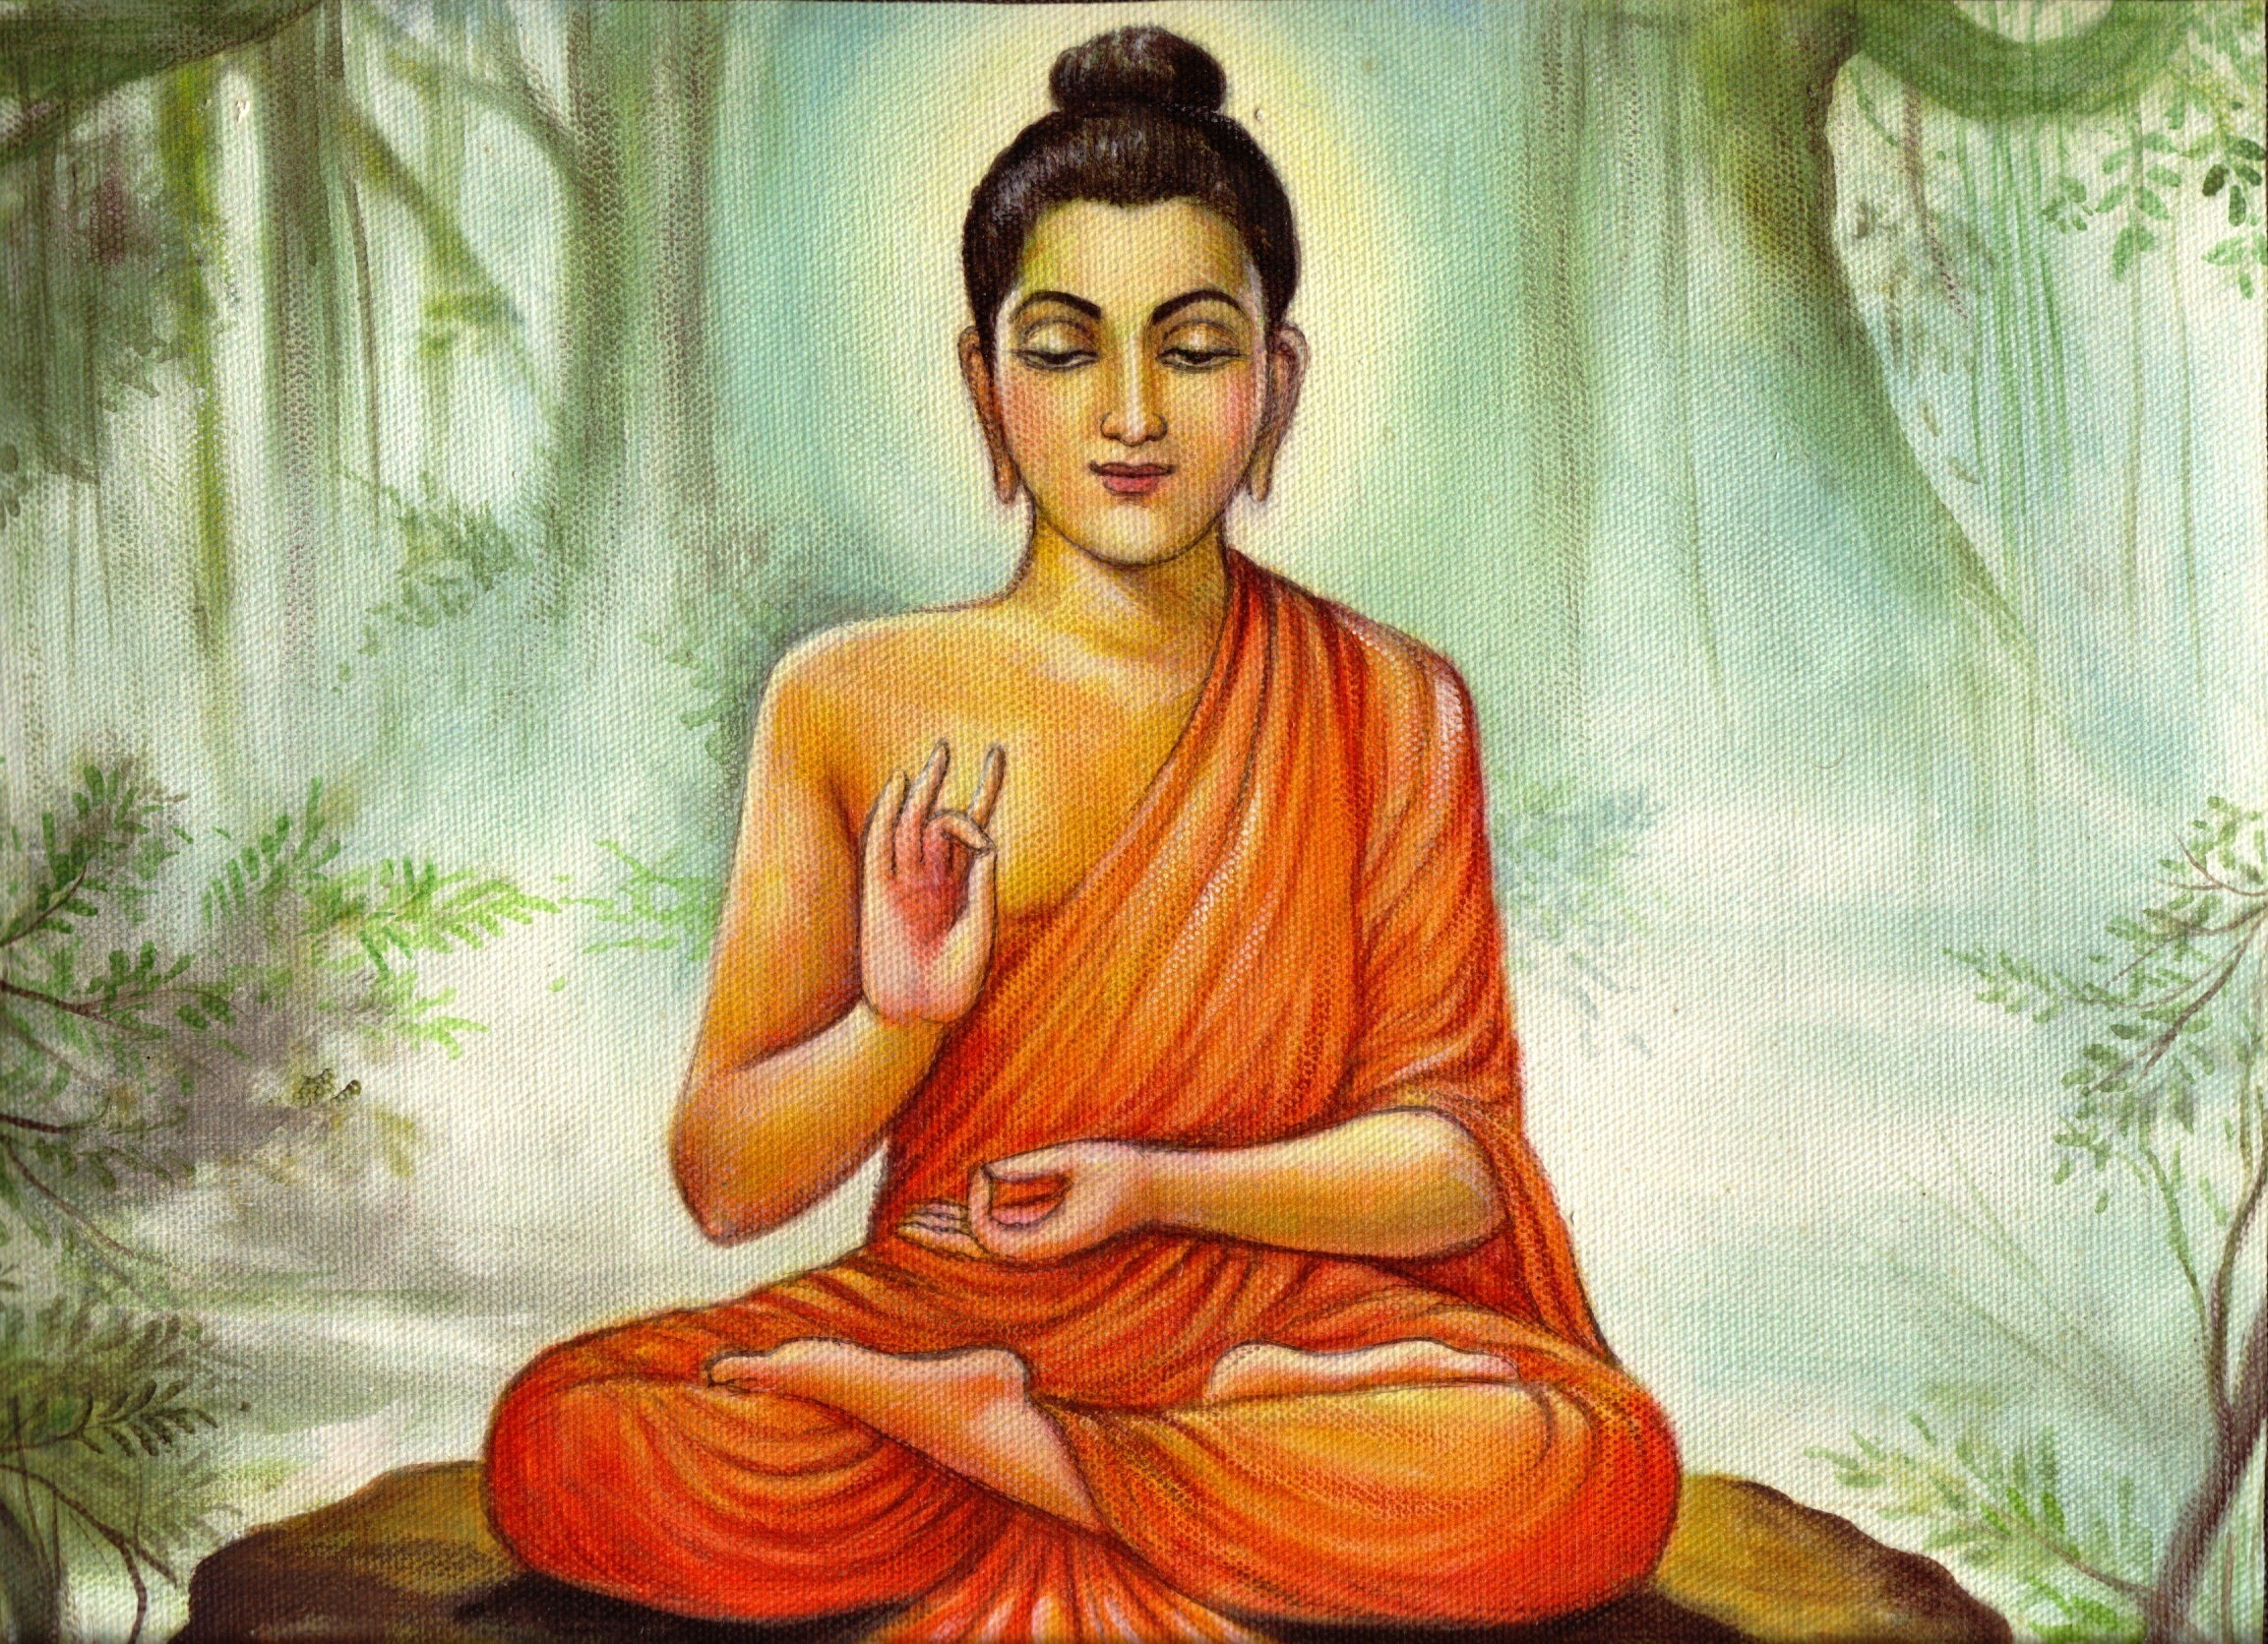 an analysis of the teachings of siddhartha gautama and buddhism The life of the buddha however, a deeper analysis of his situation concludes that this impact of the life and teachings of siddhartha gautama.